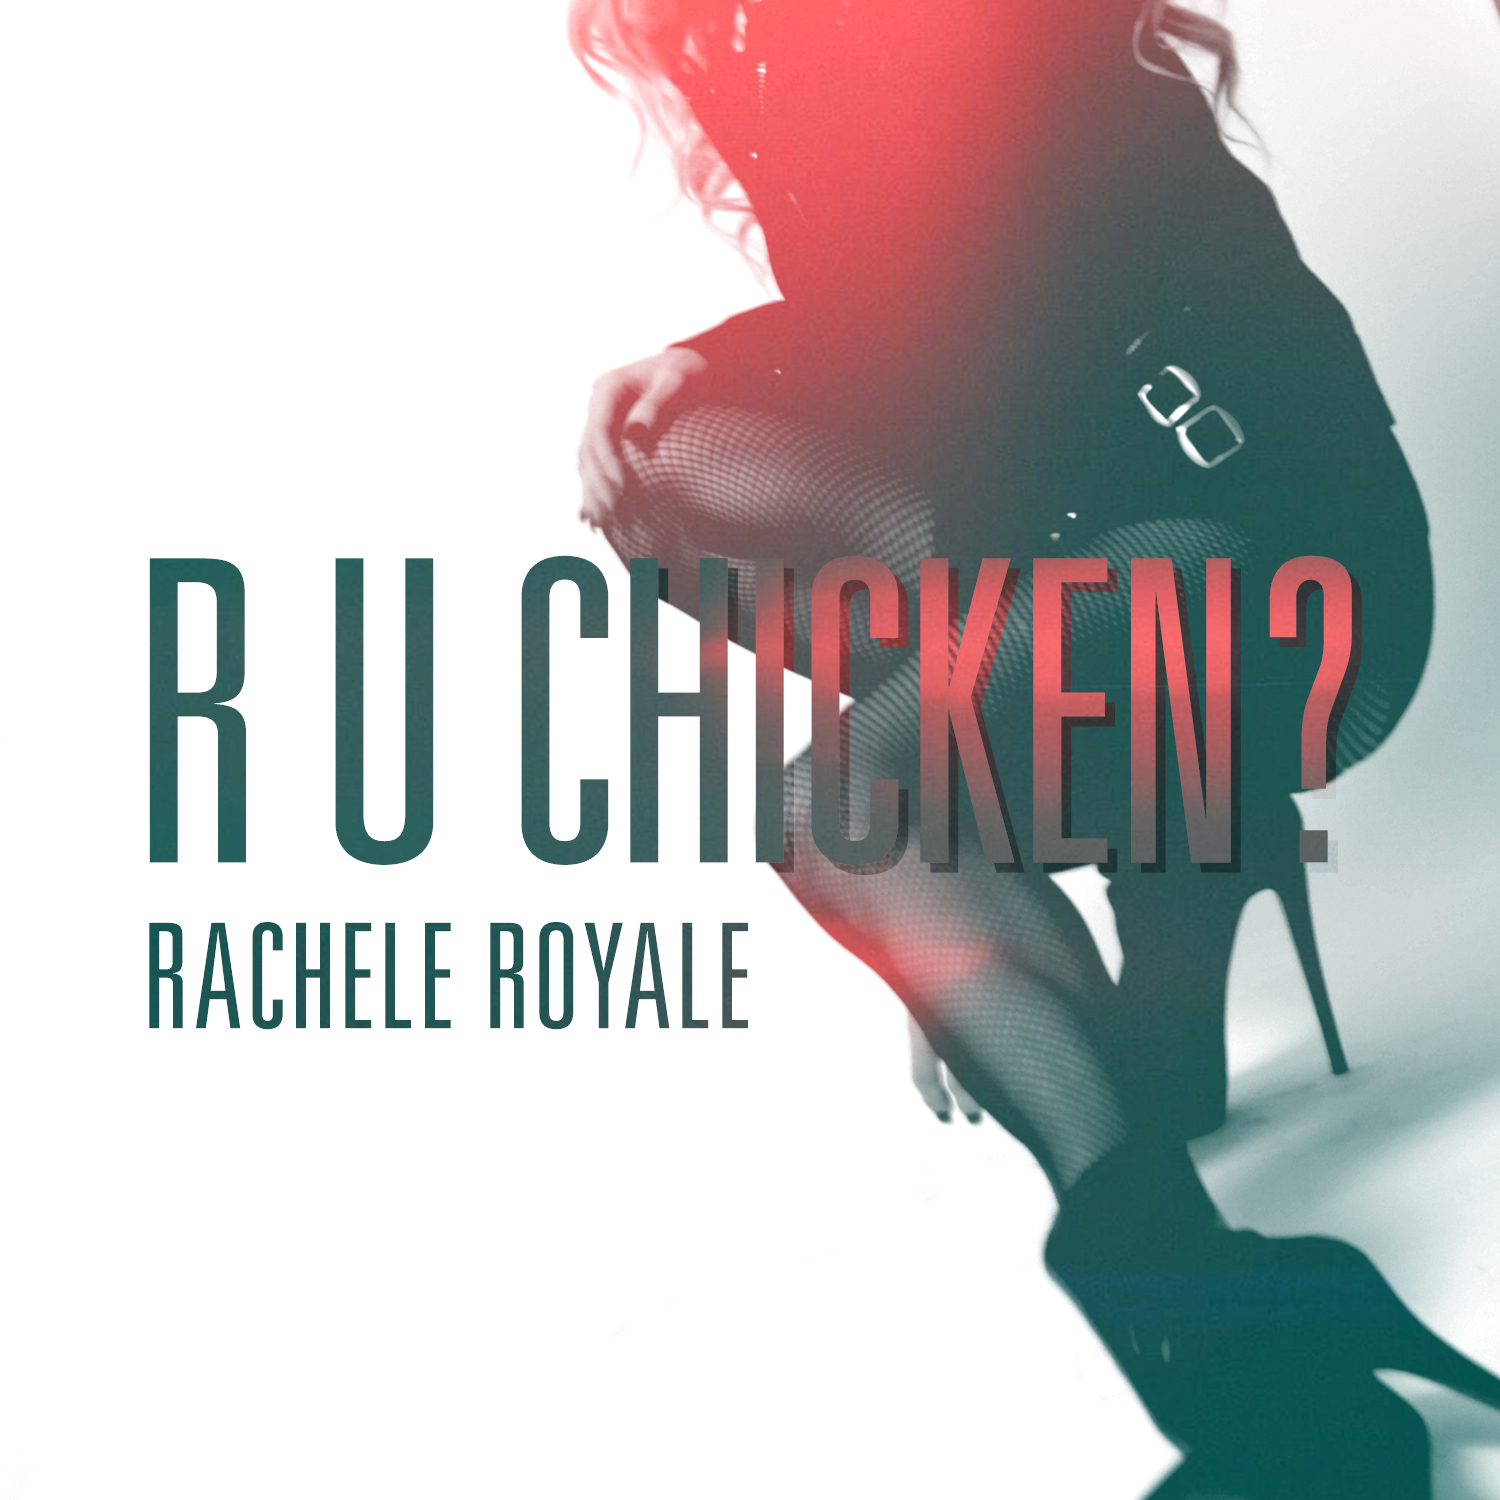 rachele_royale_ruchicken_final